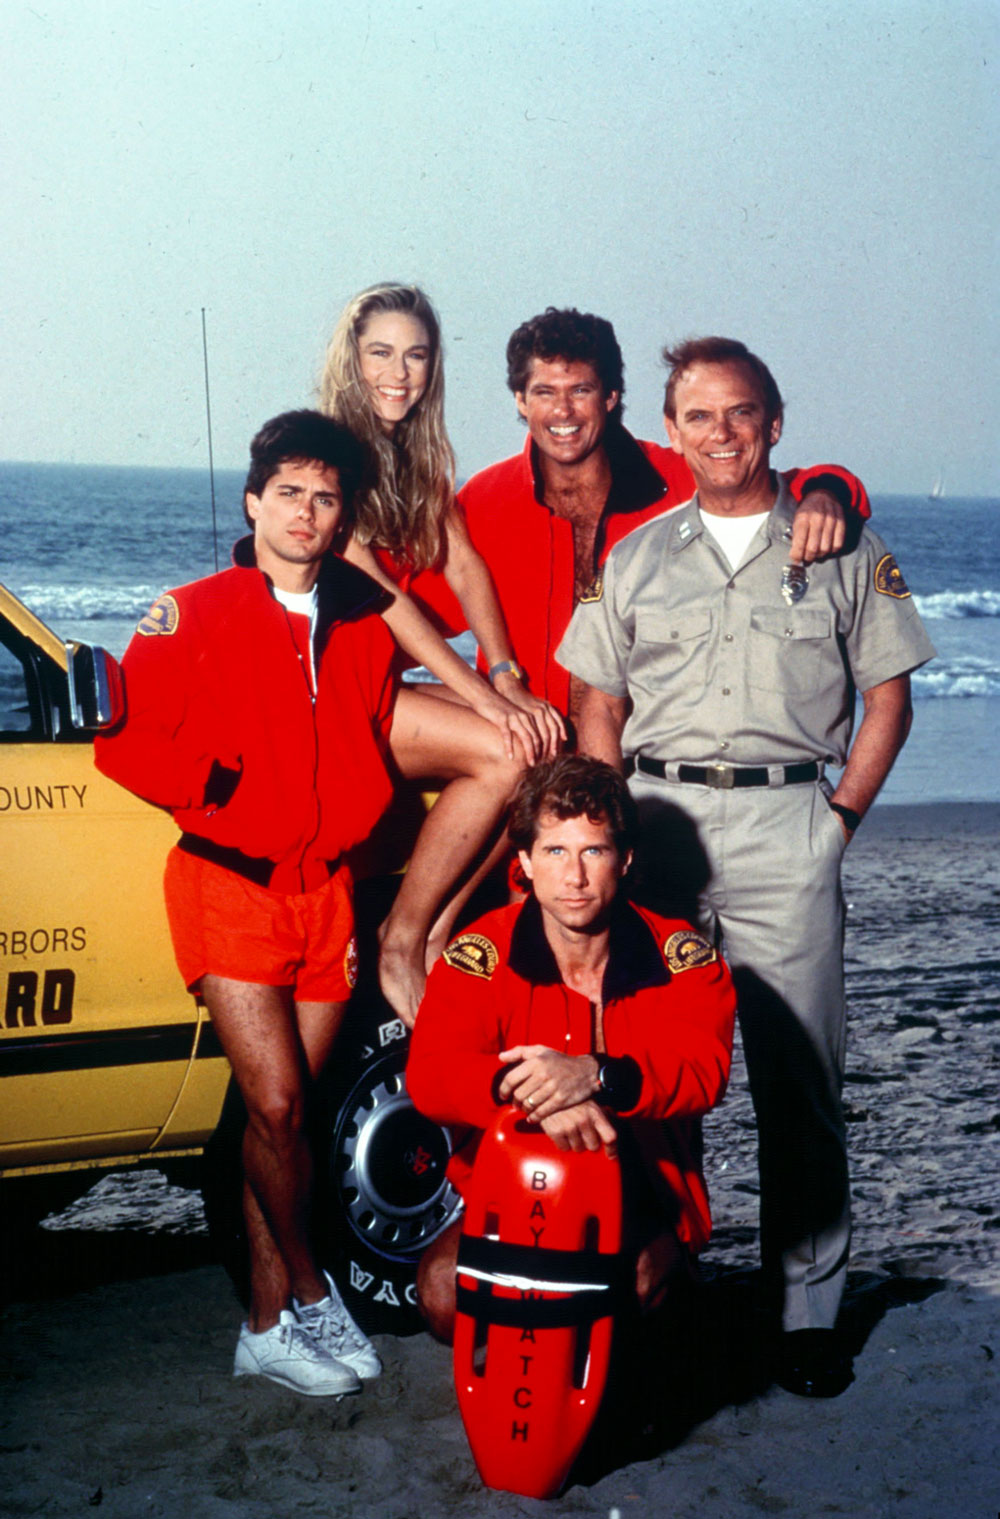 Baywatch Remastered spiketv Spettacolo Che Spettacolo